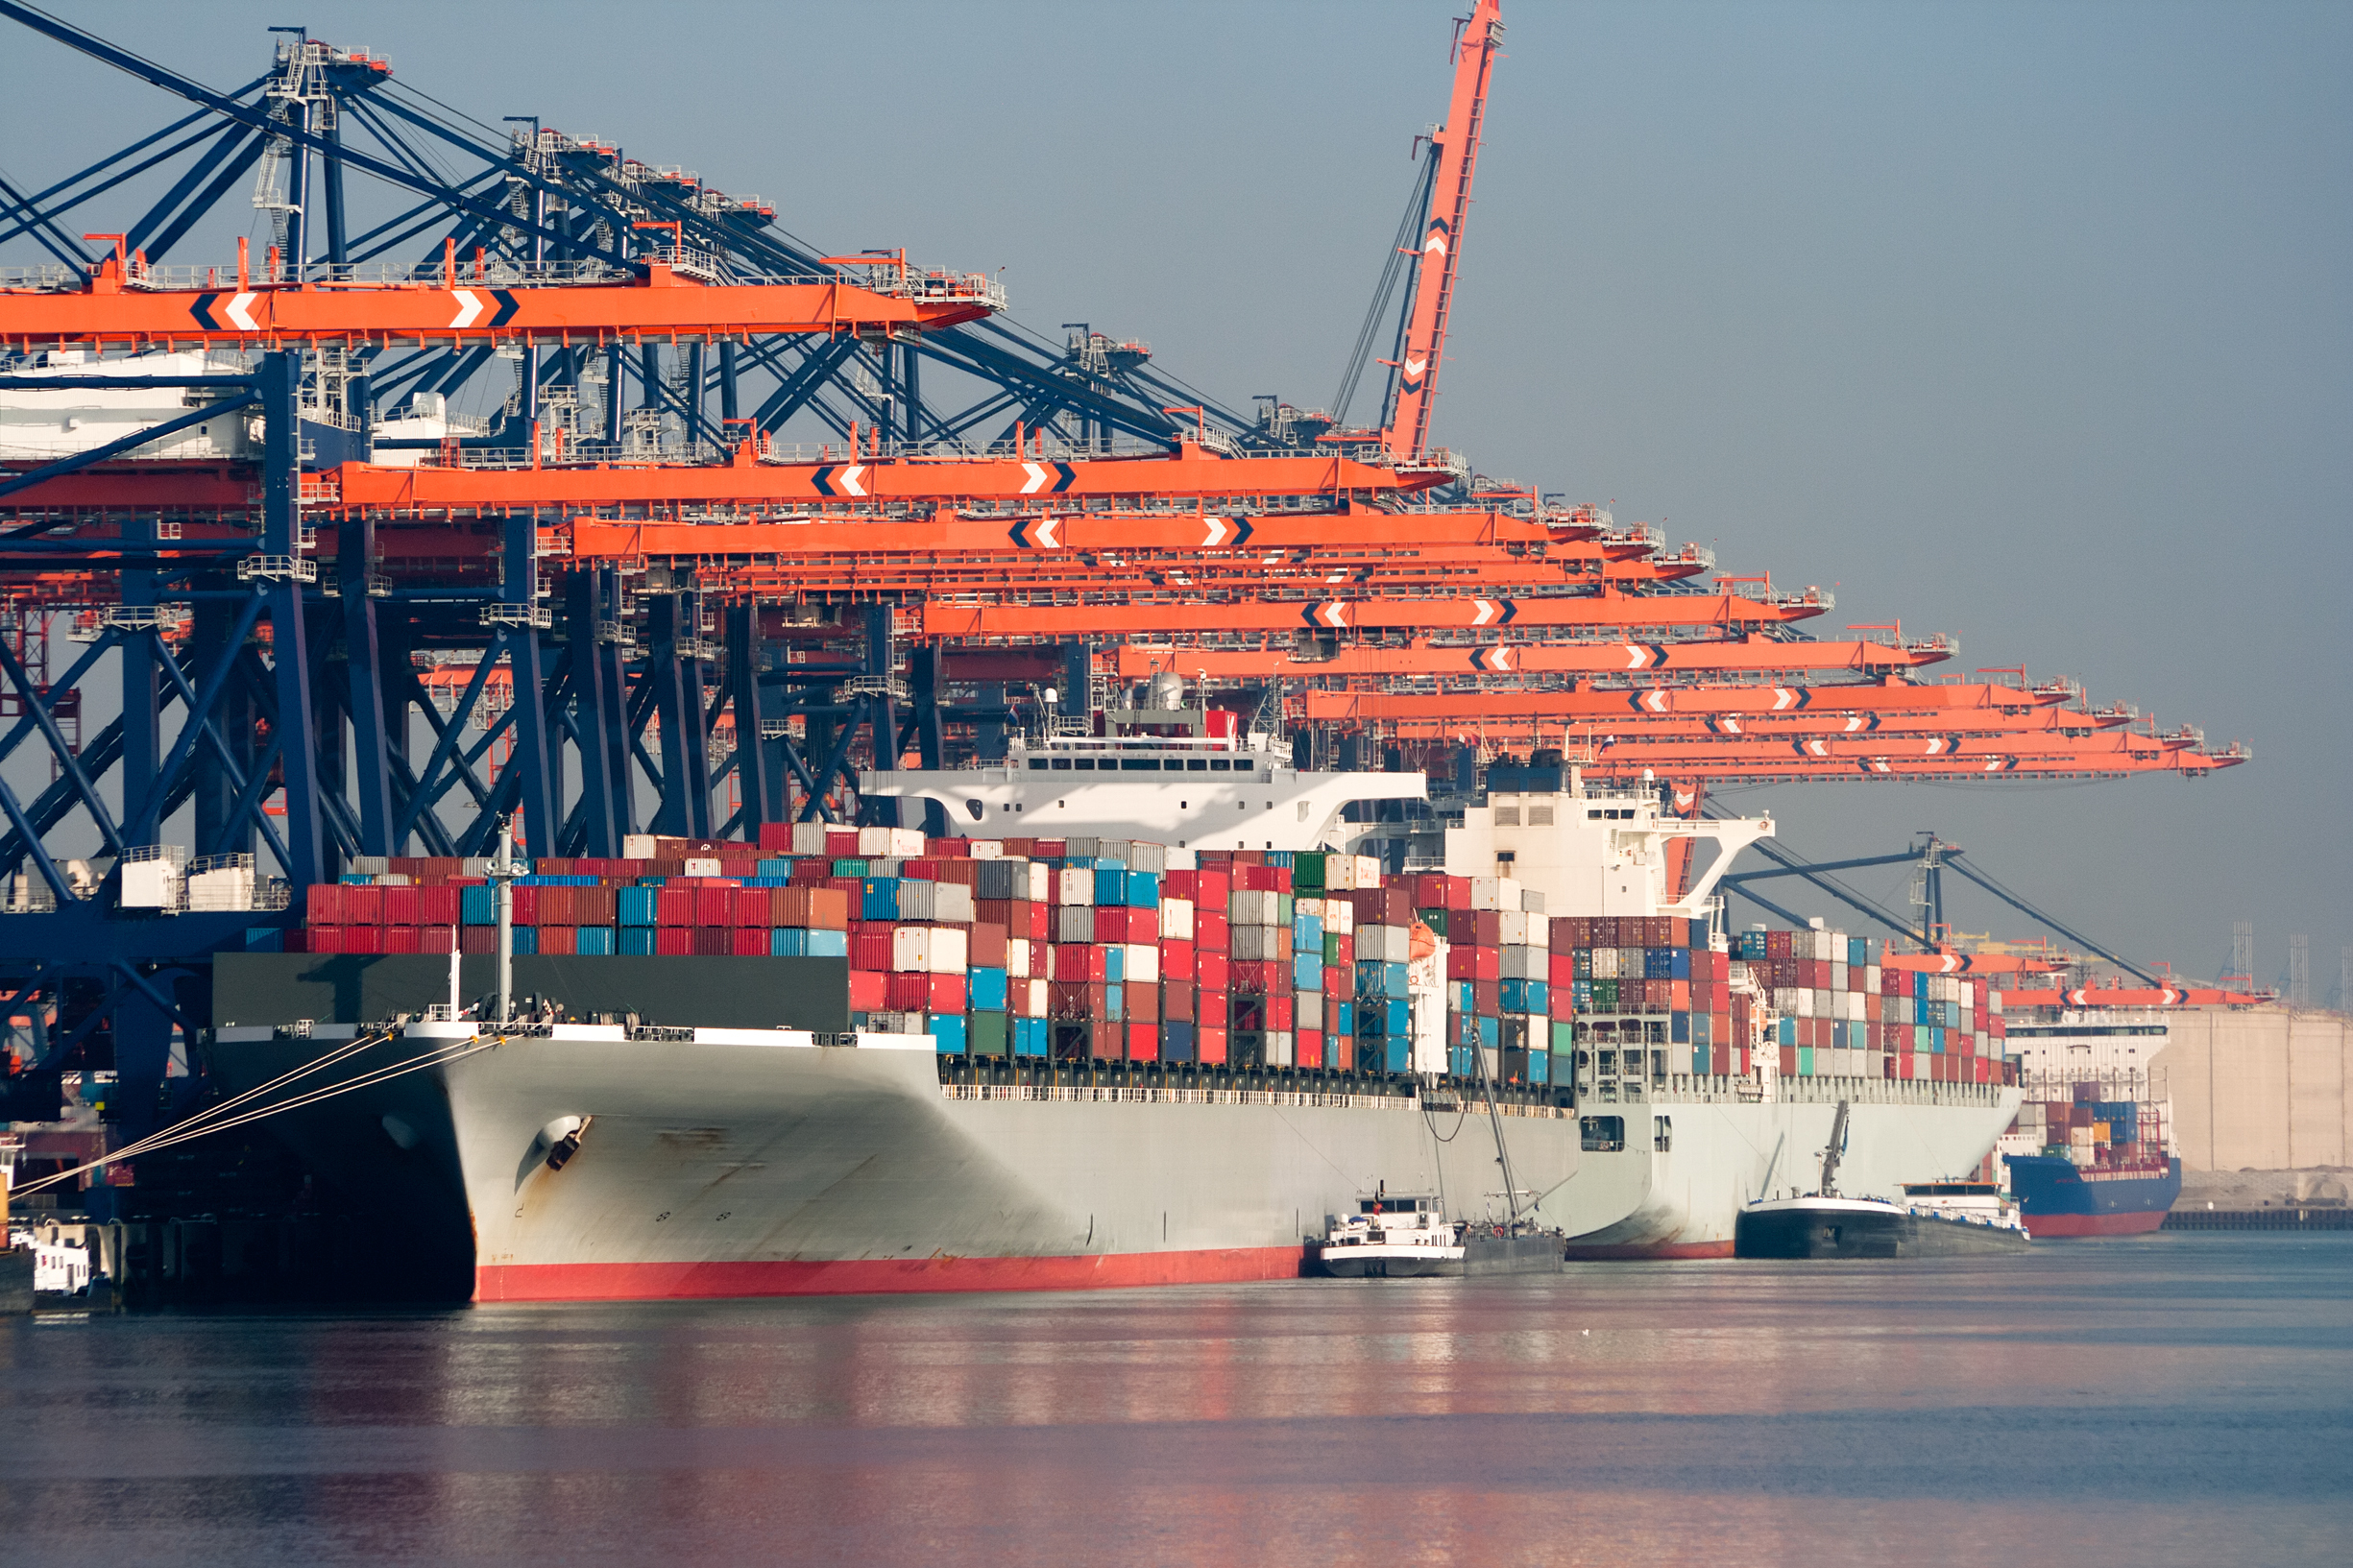 Rotterdam  accounts for 60% of the 2016-18 container traffic increase in the Le Havre-Hamburg range